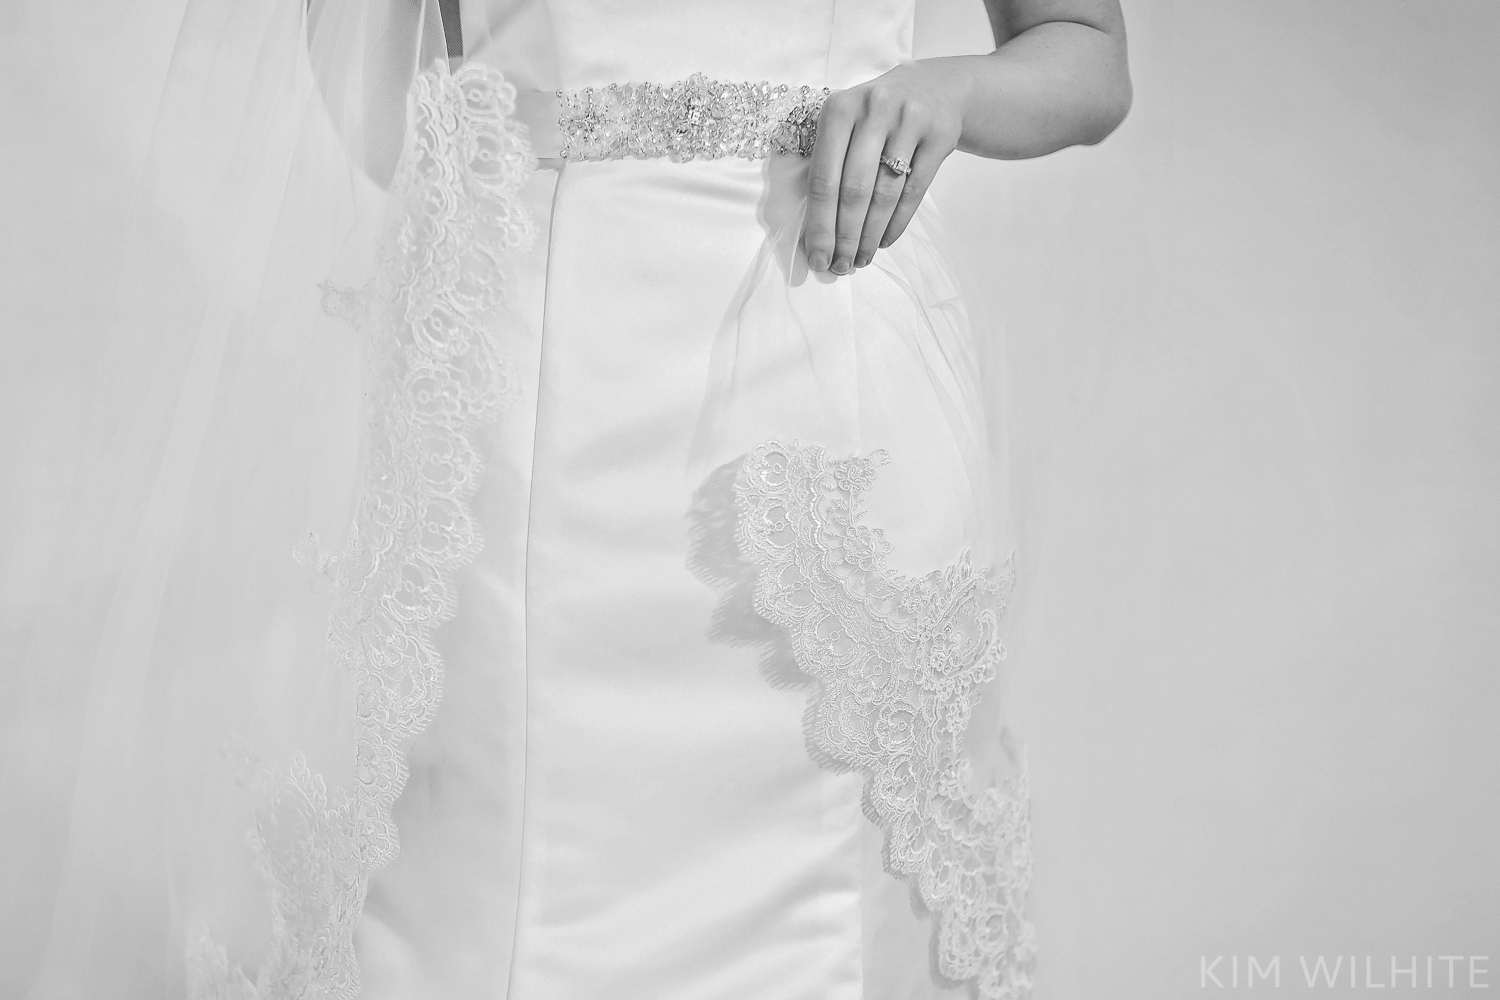 custon-wedding-veils-4.jpg